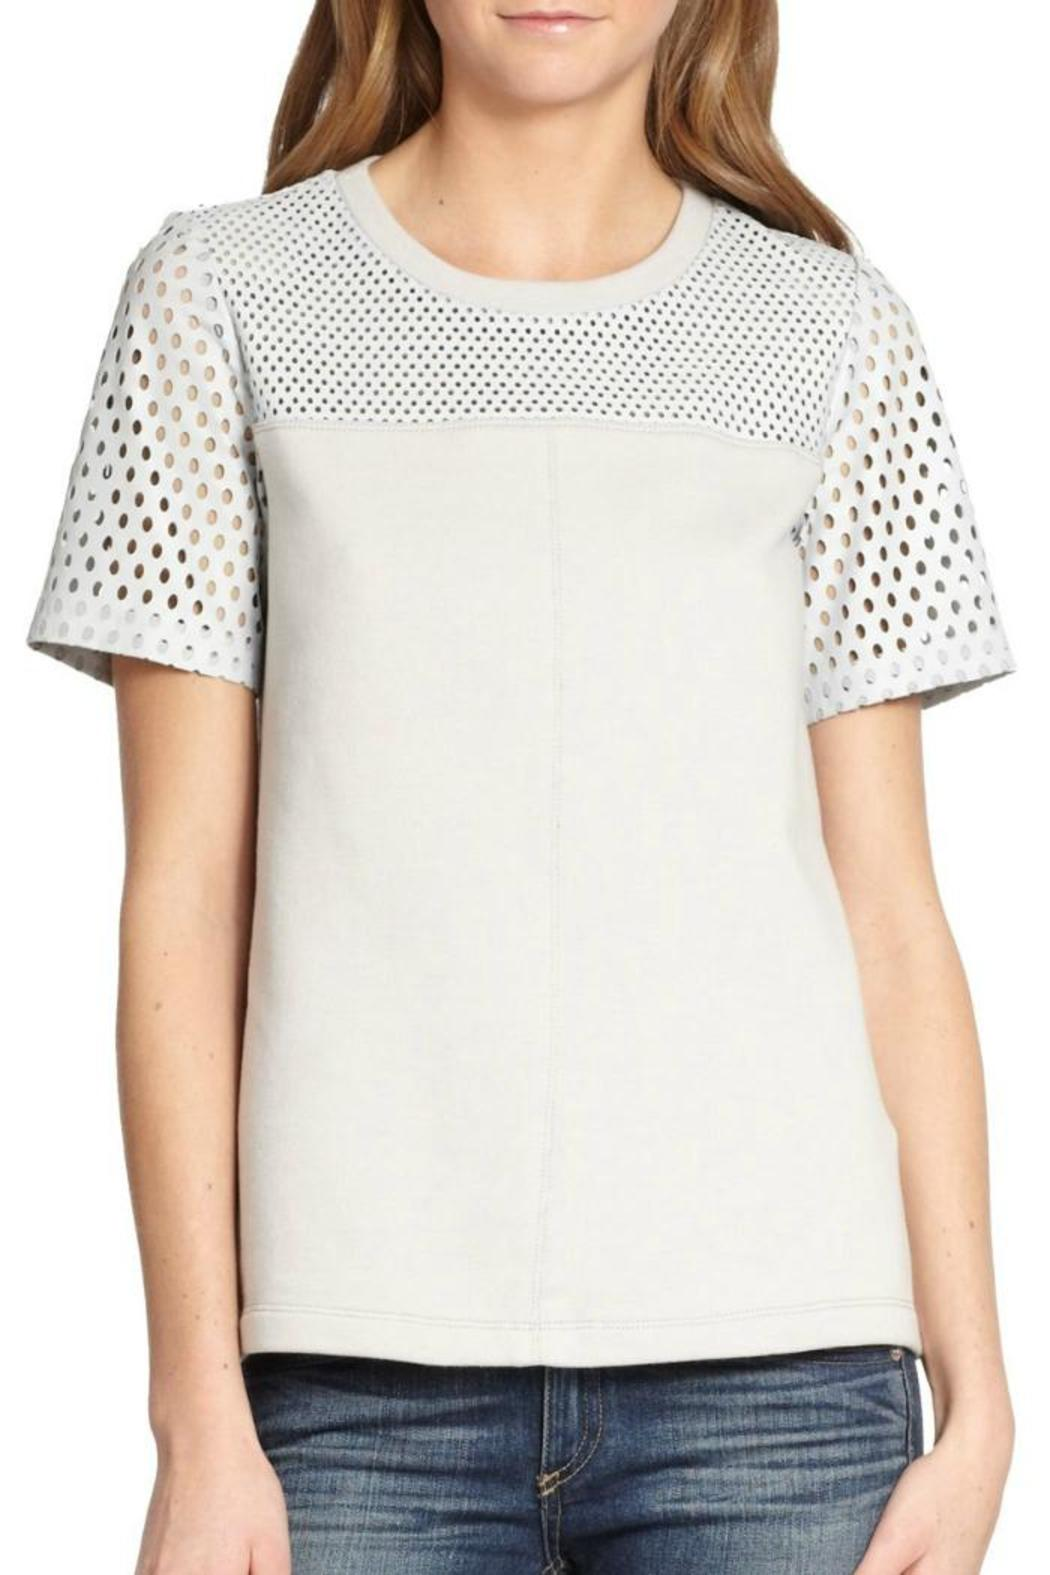 Rebecca Taylor Perforated Leather Top - Main Image